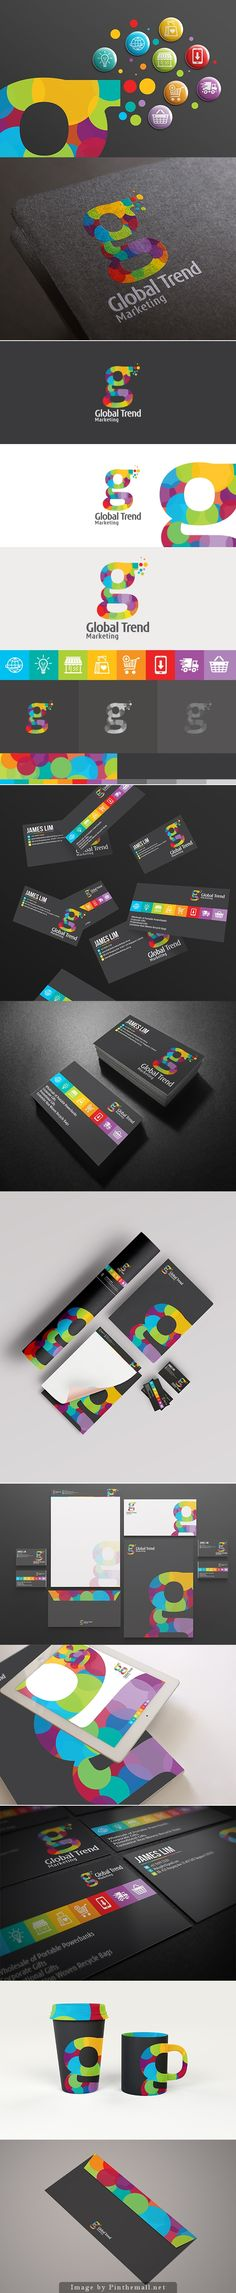 Global Trend identity packaging branding on Behance curated by Packaging Diva PD. Global Trend is an online technology shopping store that brings in the best and latest tech stuff in town. Corporate Design, Corporate Branding, Brand Identity Design, Graphic Design Branding, Stationery Design, Web Design, 2 Logo, Design Poster, Art Graphique